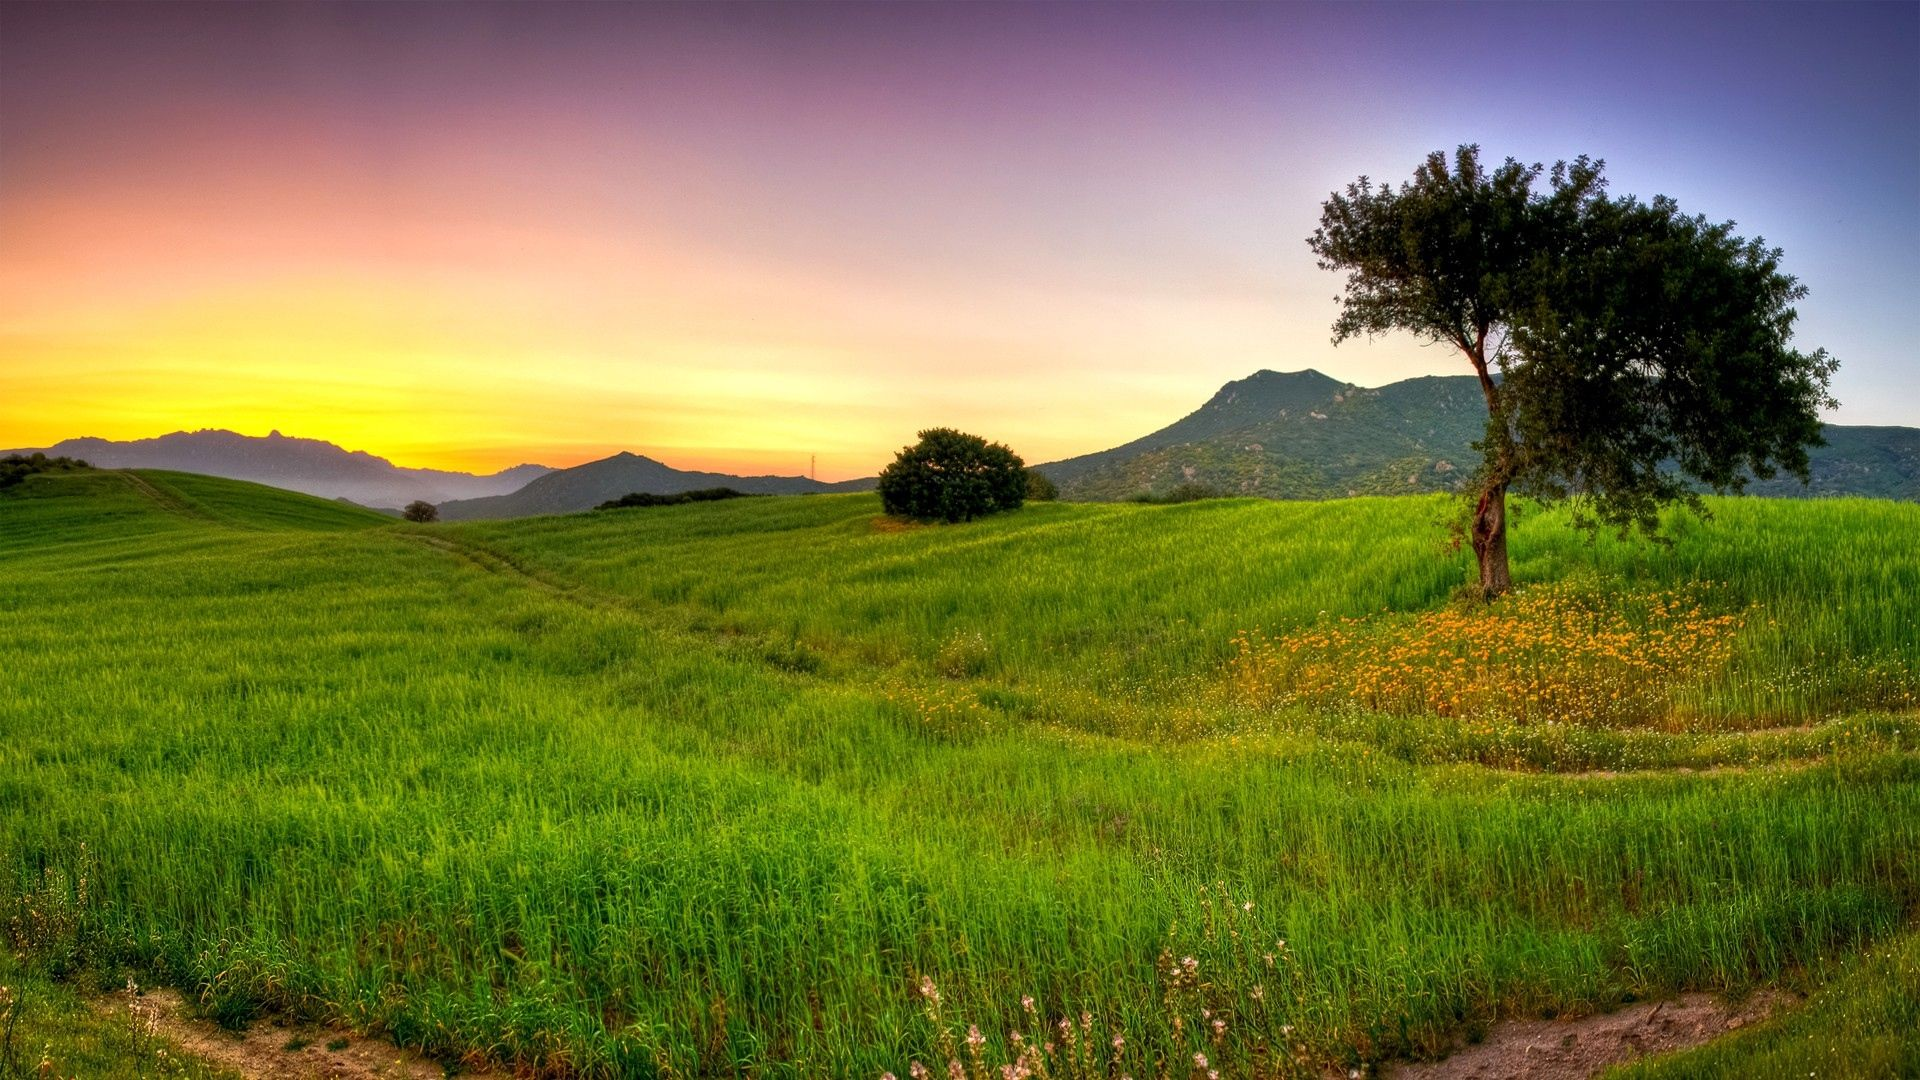 single tree and green grass nature wallpaper